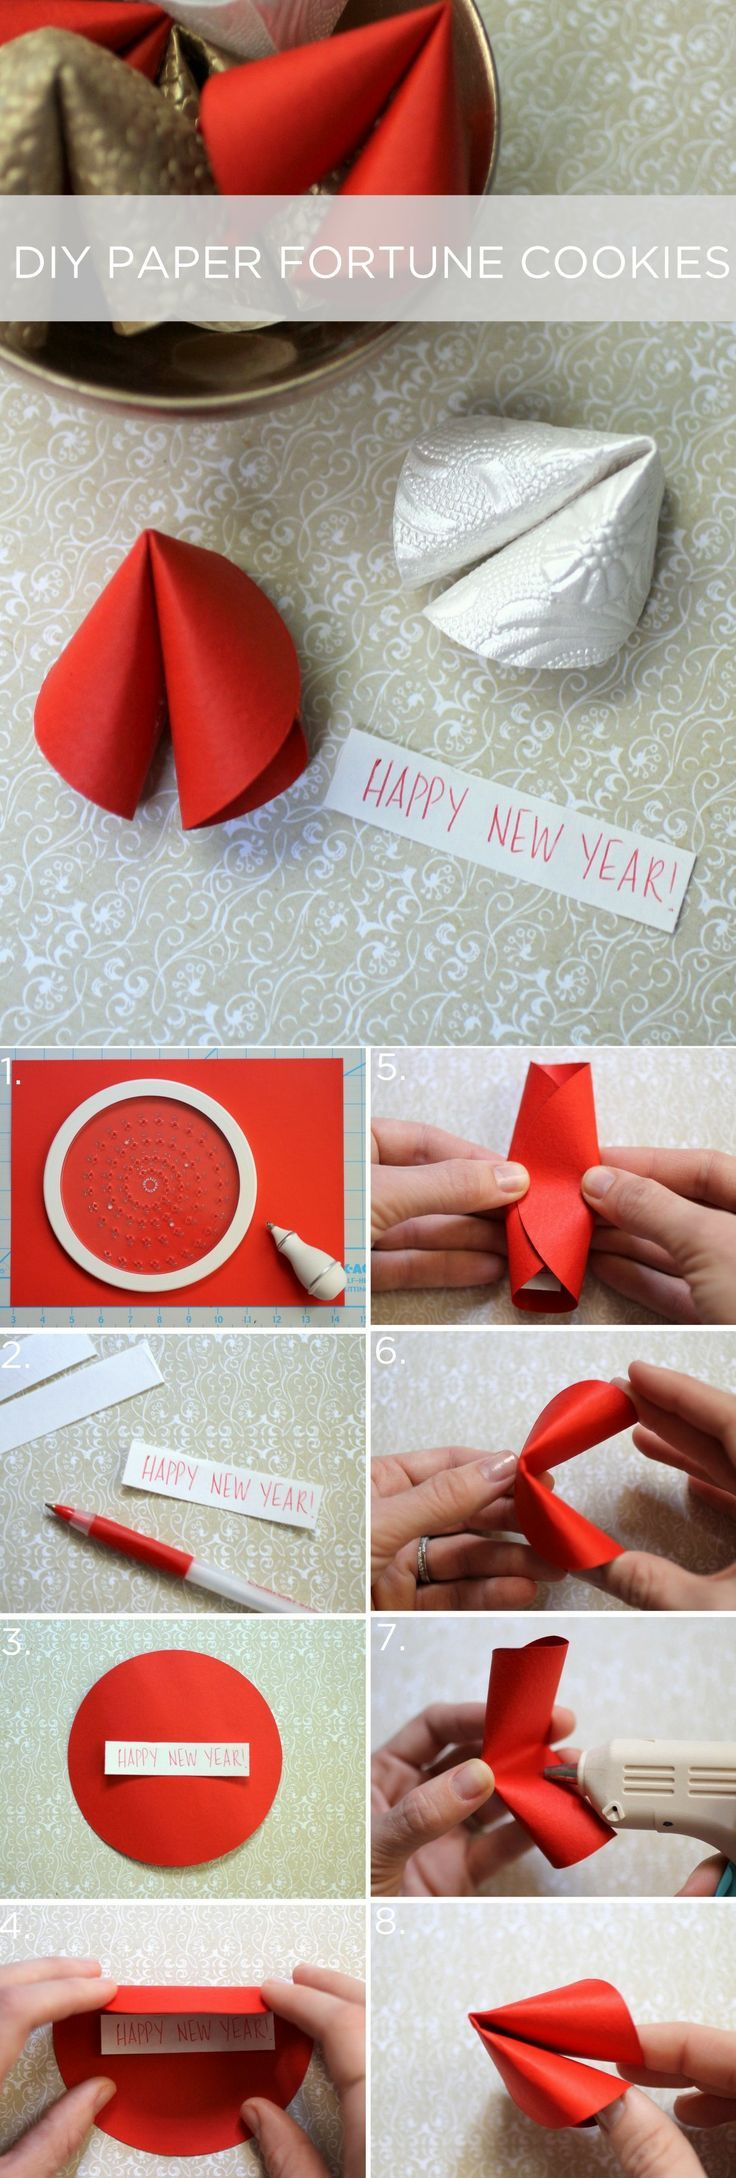 Chinese New Year Diy Paper Fortune Cookies Evite New Year Diy Chinese New Year Crafts Chinese New Year Decorations